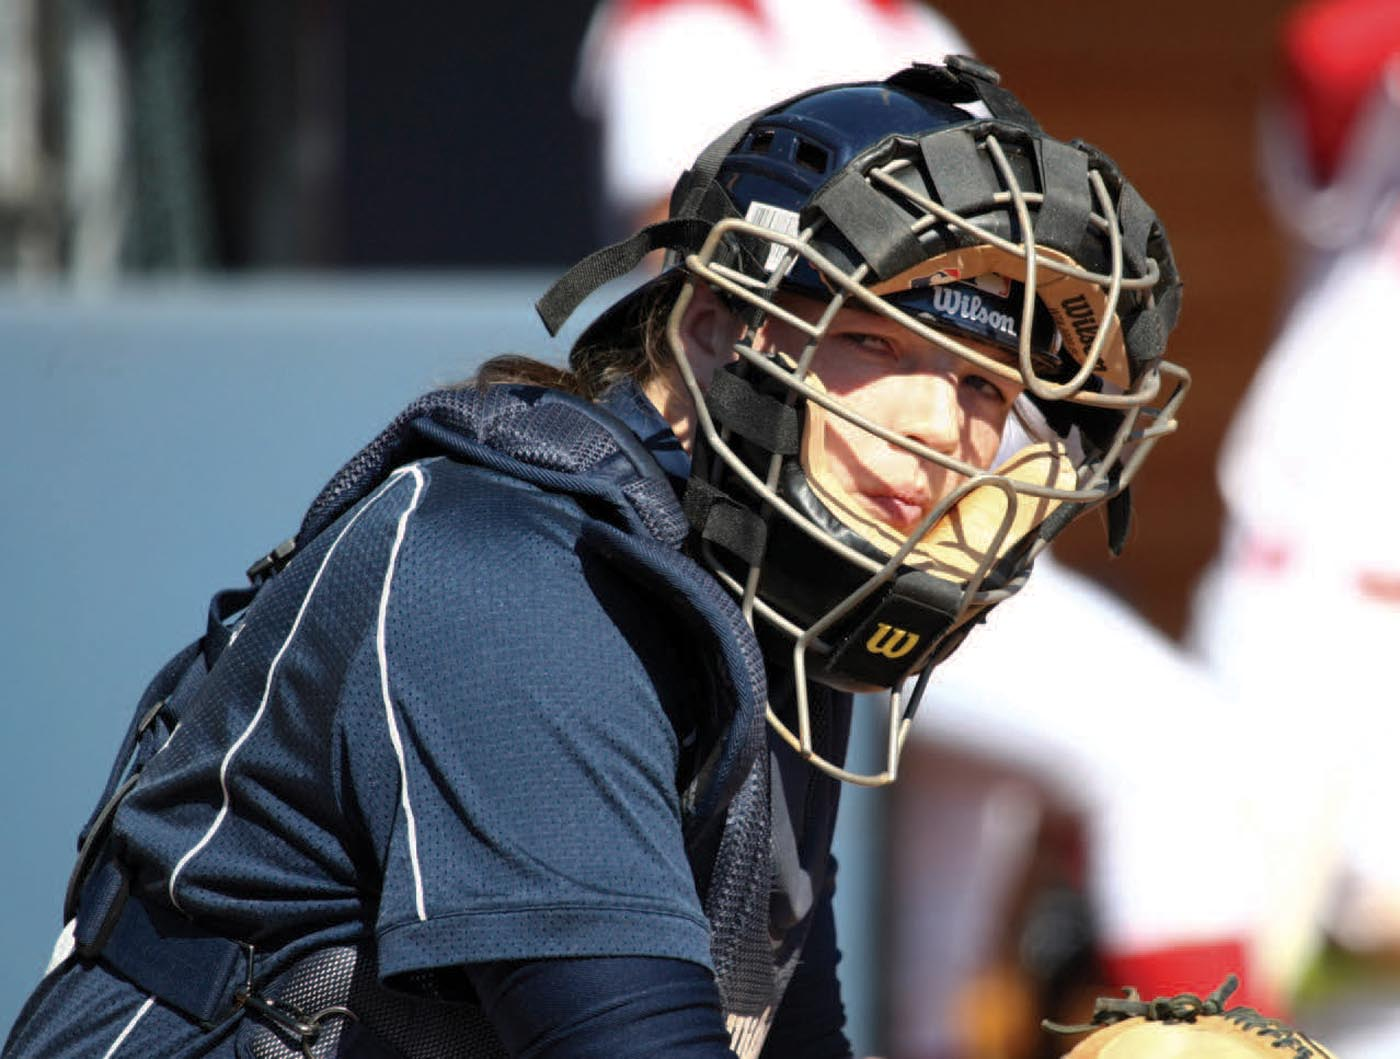 Longwood recognized talent in softball star Megan Baltzell '14 that other Division I schools overlooked. © Red Rocket Photography.